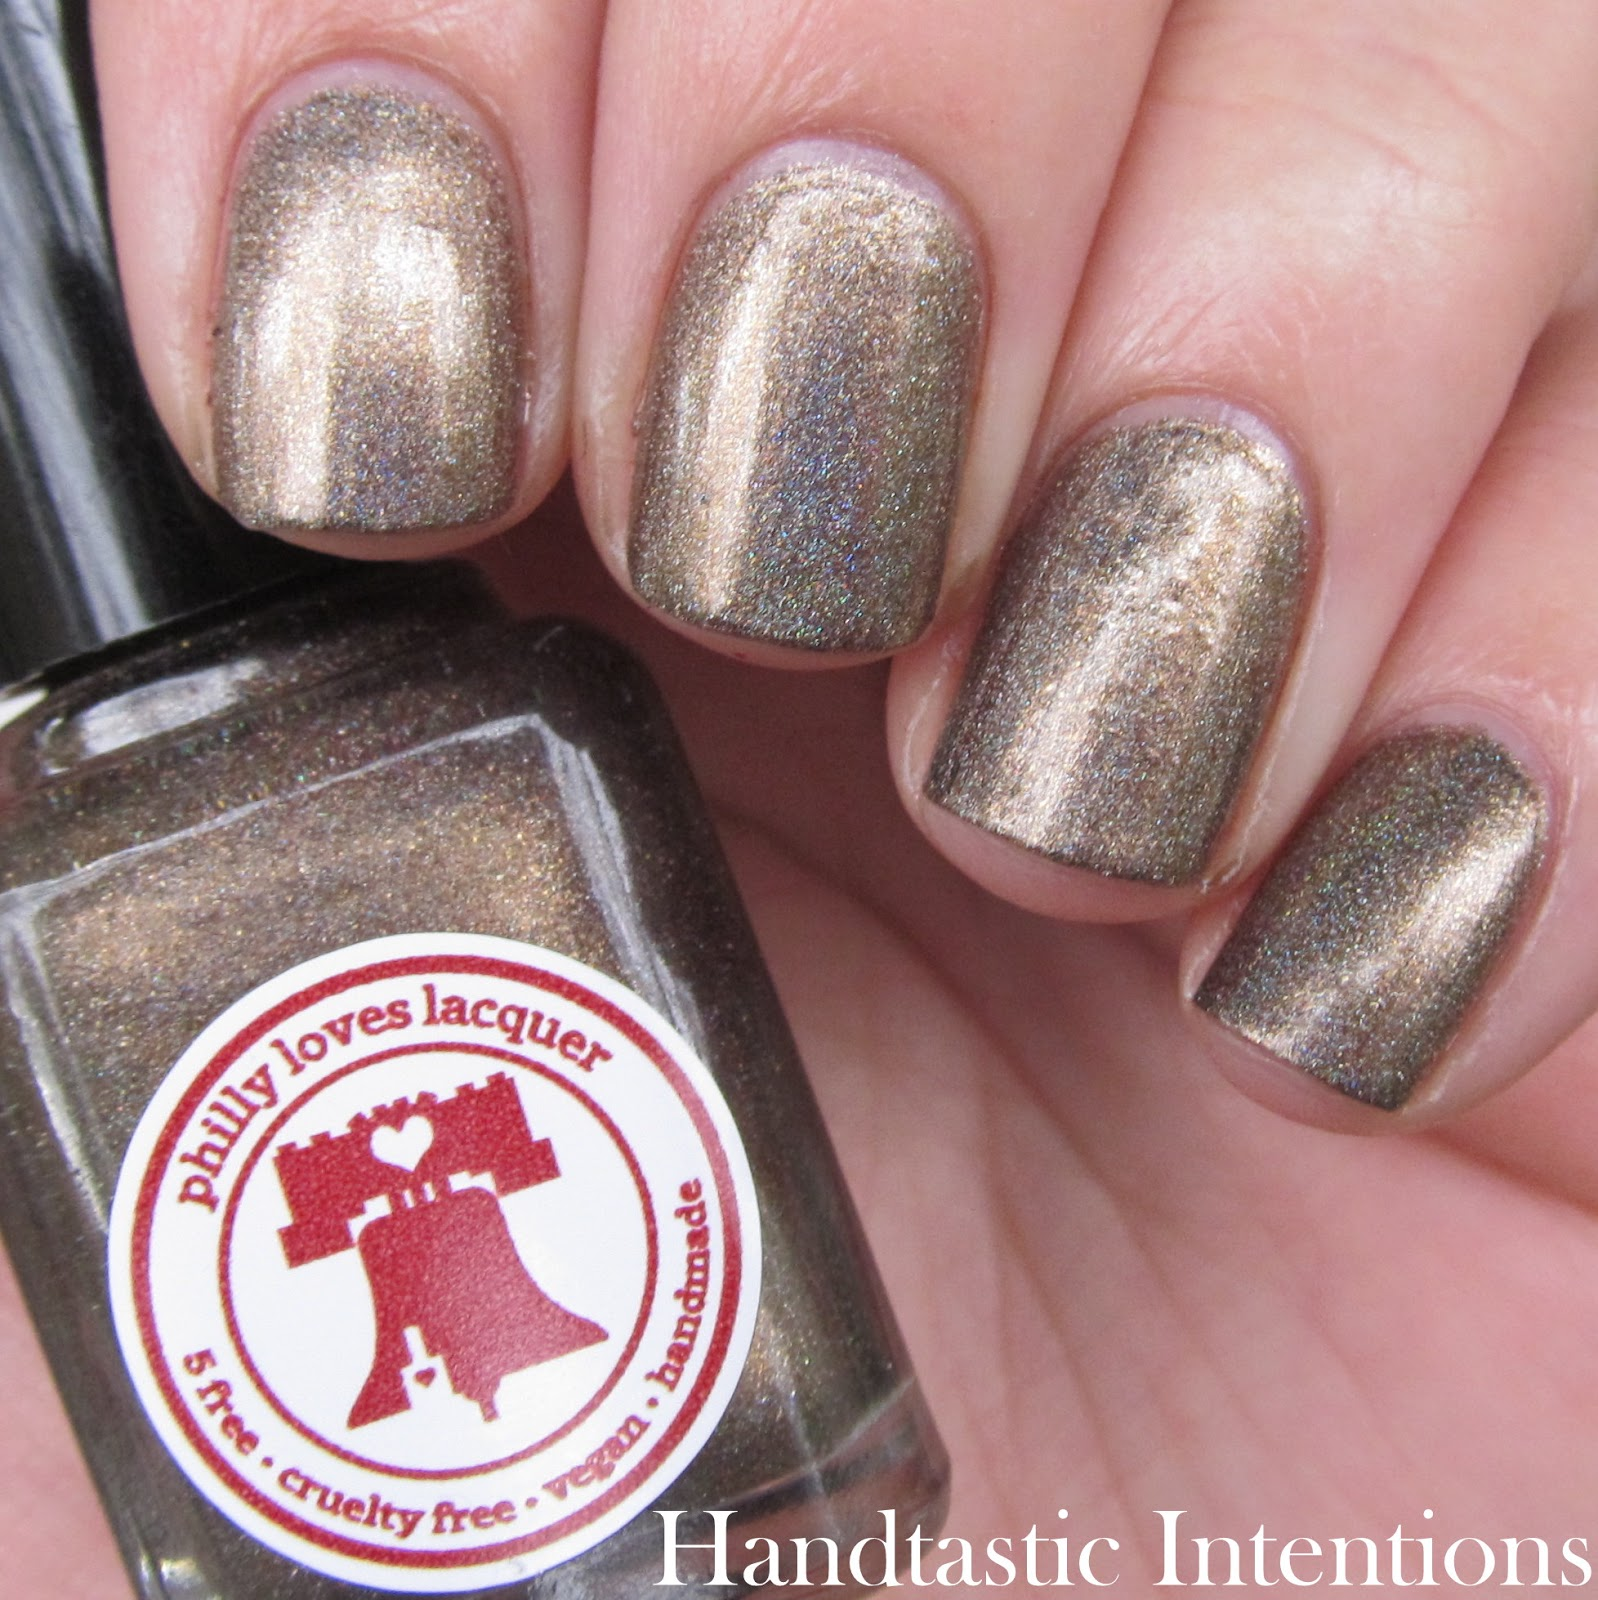 Philly-Loves-Lacquer-Shots-of-Brown-Liquor-Swatch